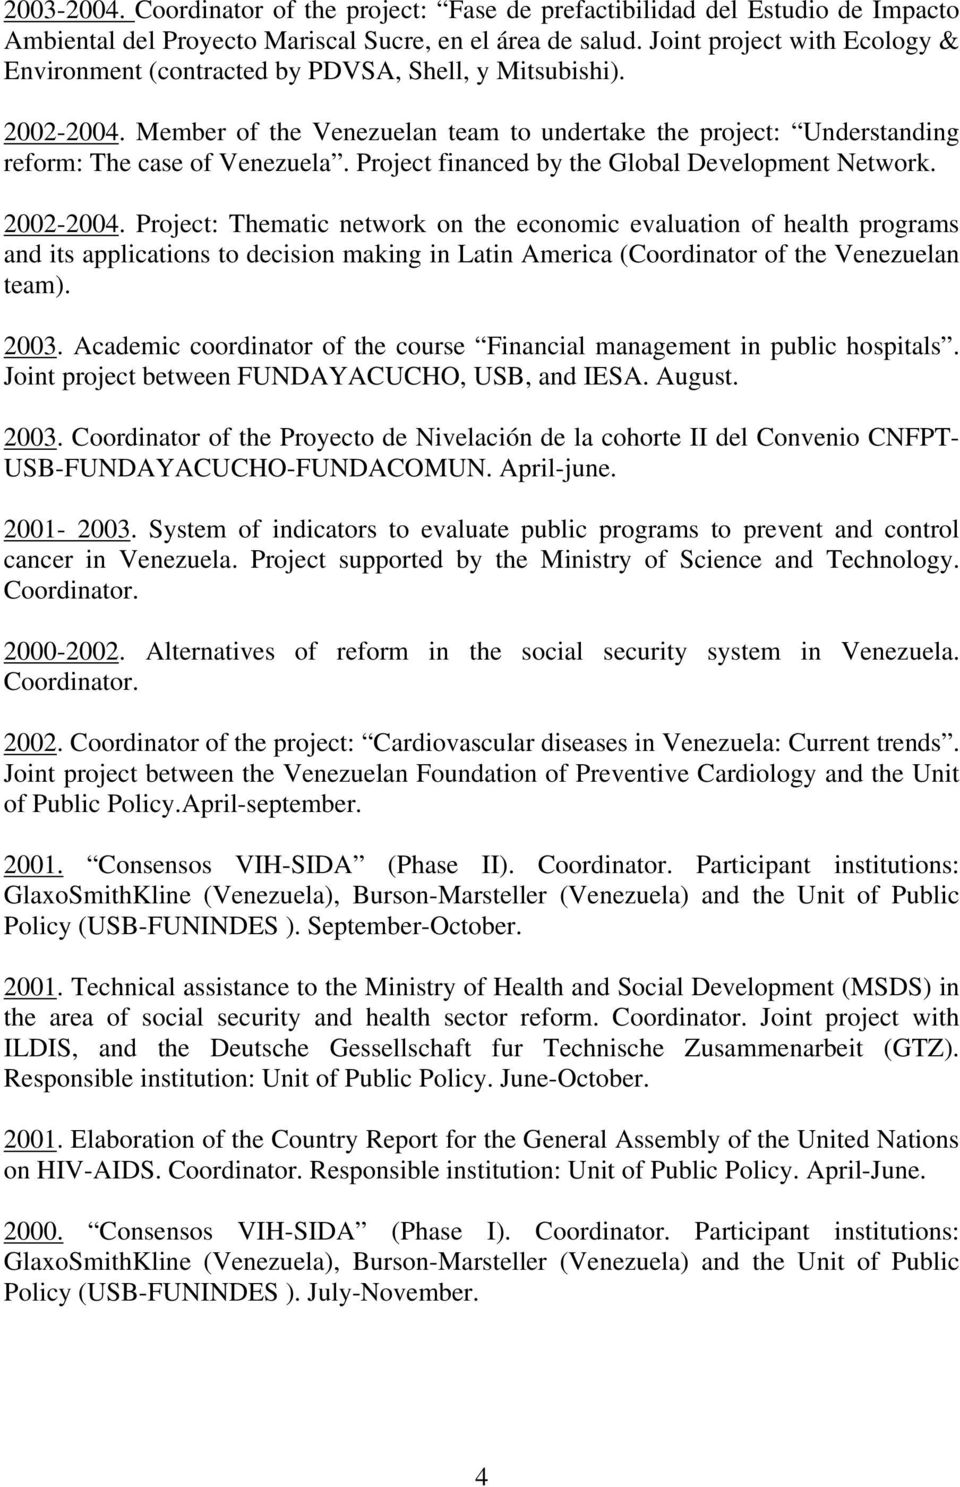 Project financed by the Global Development Network. 2002-2004.